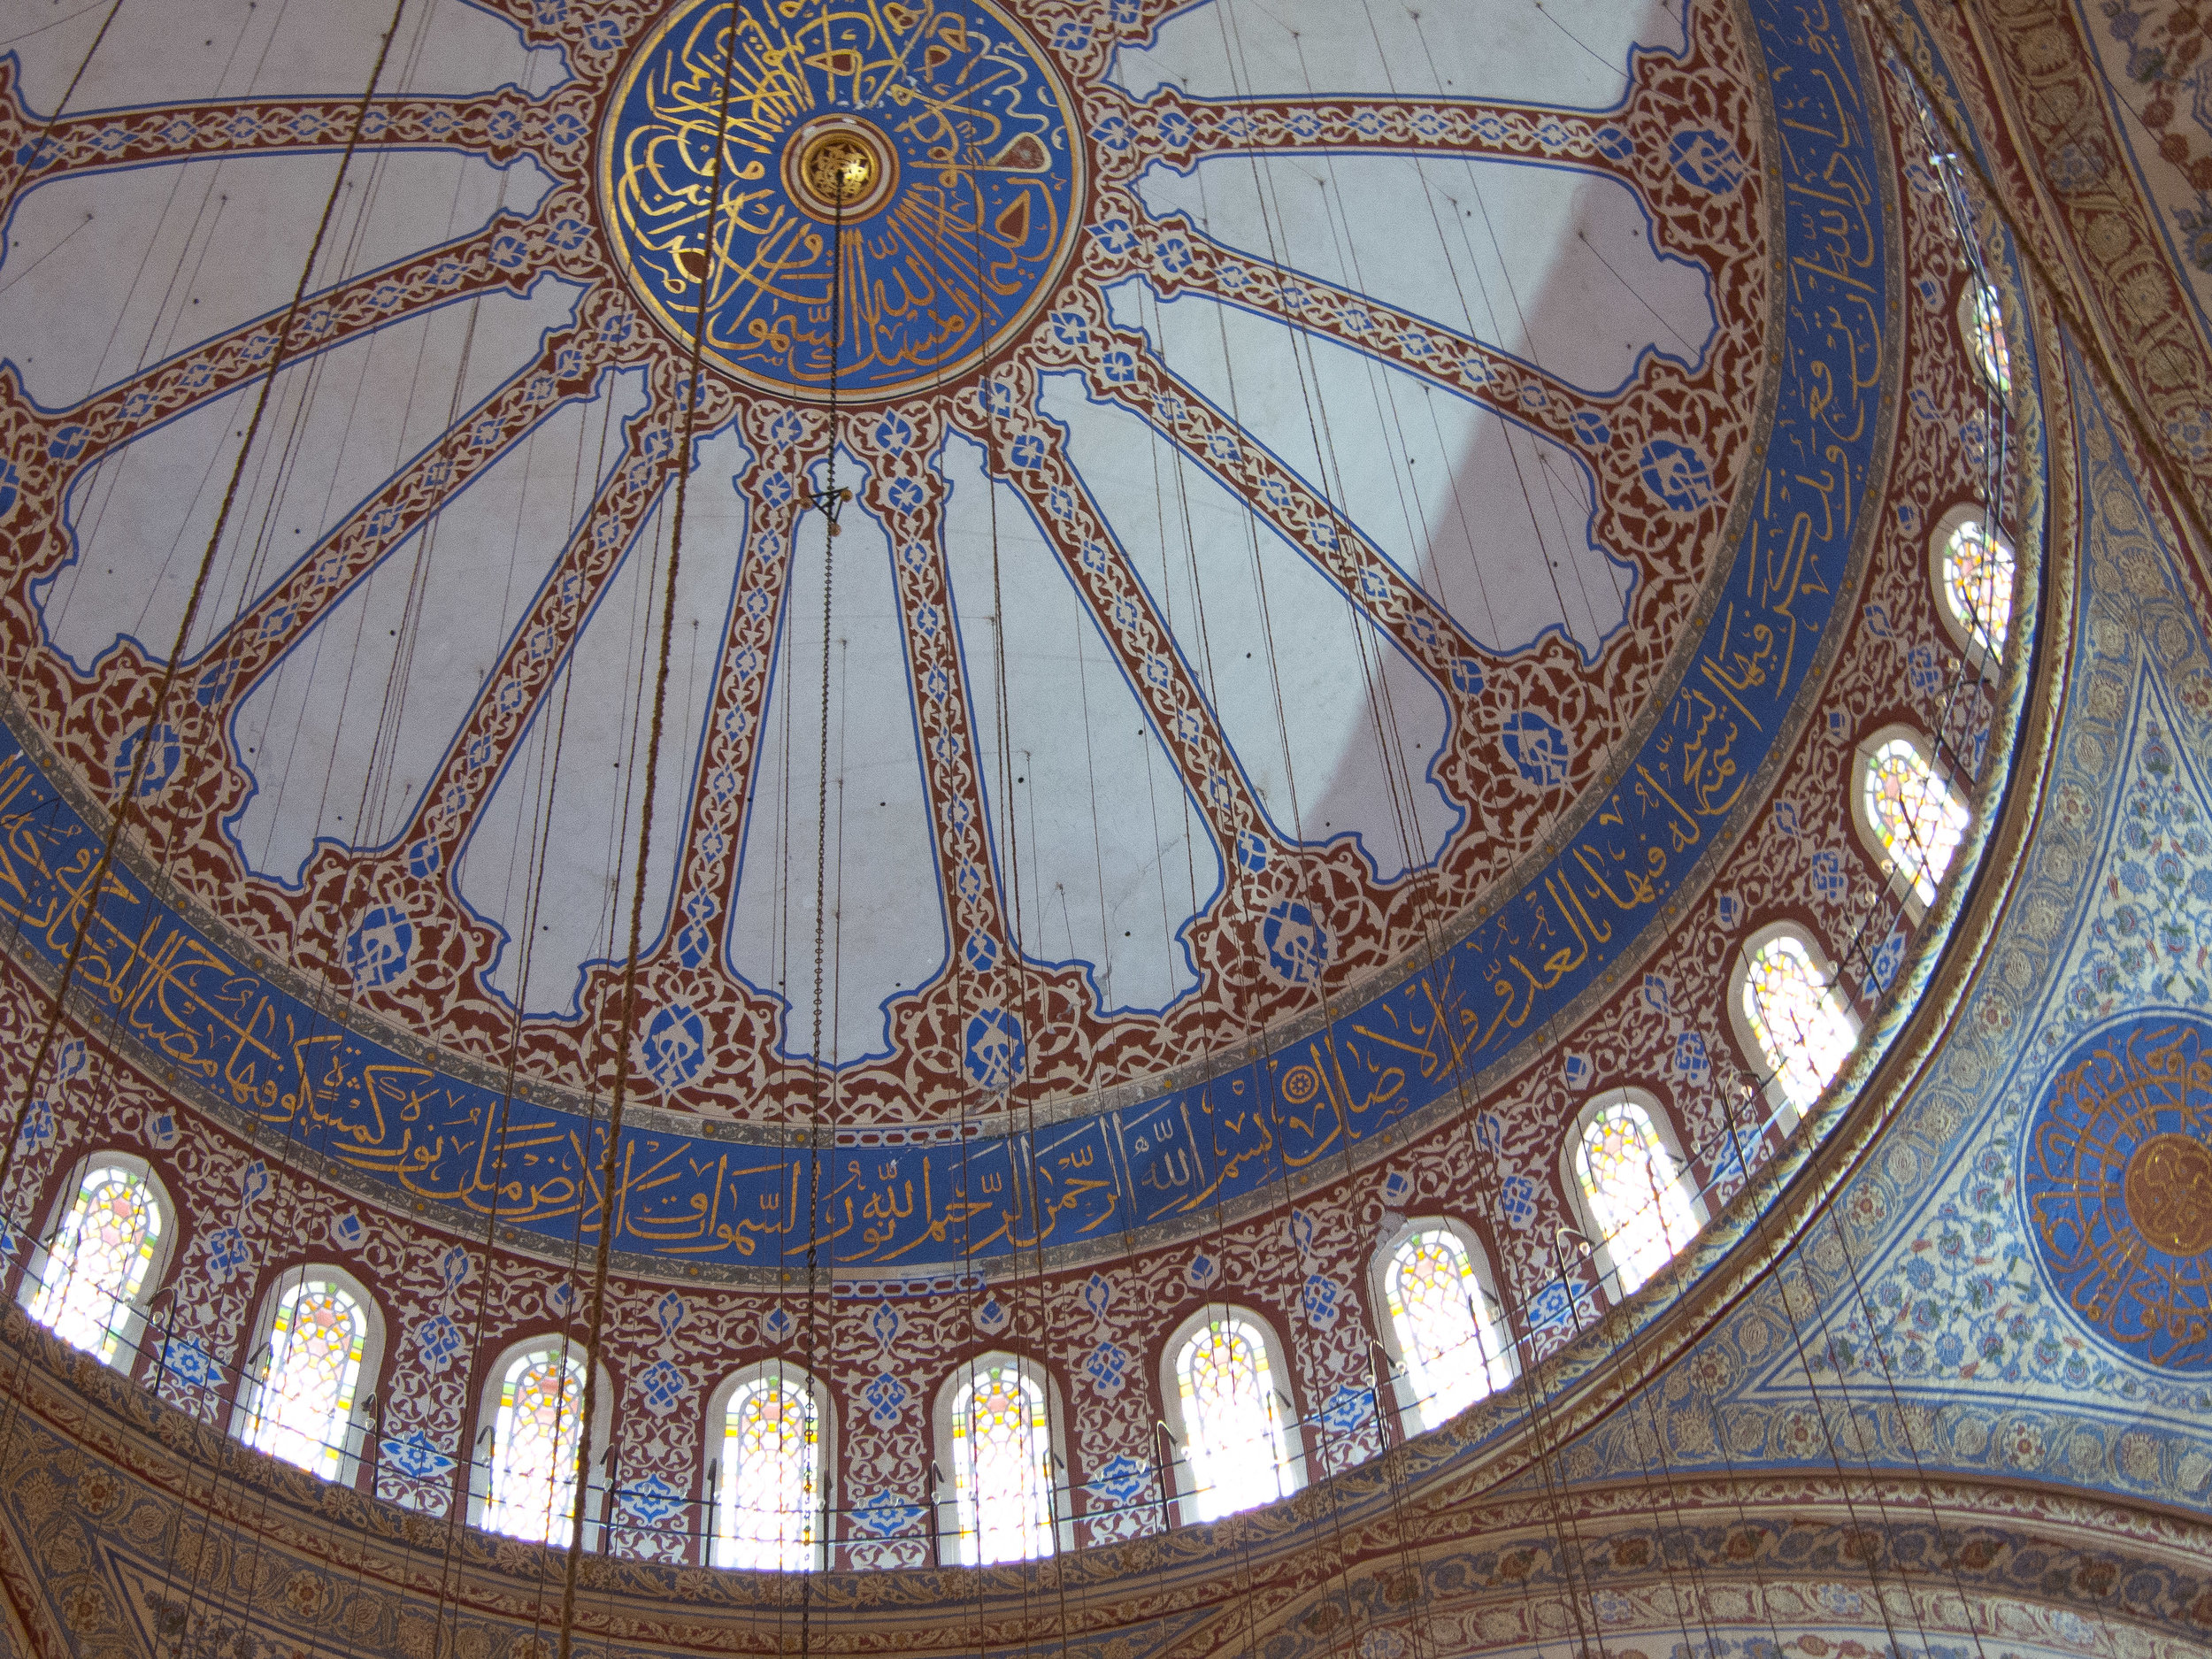 Istanbul Mosques (18 images)